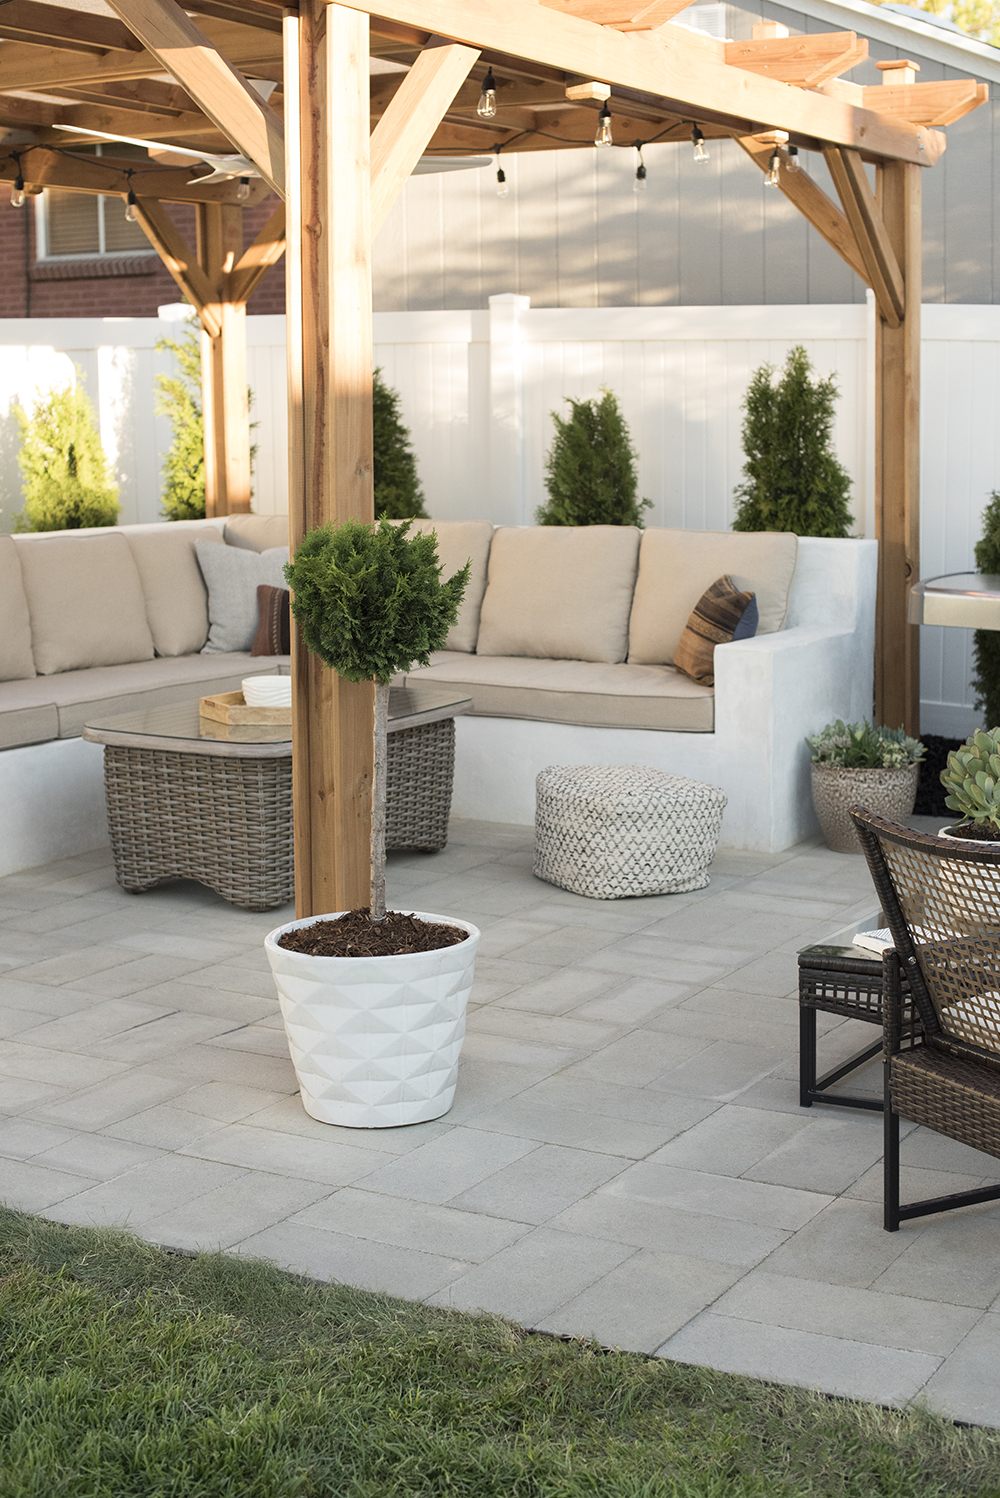 How to Install A Custom Paver Patio - Room for Tuesday Blog on Backyard Brick Pavers id=48306